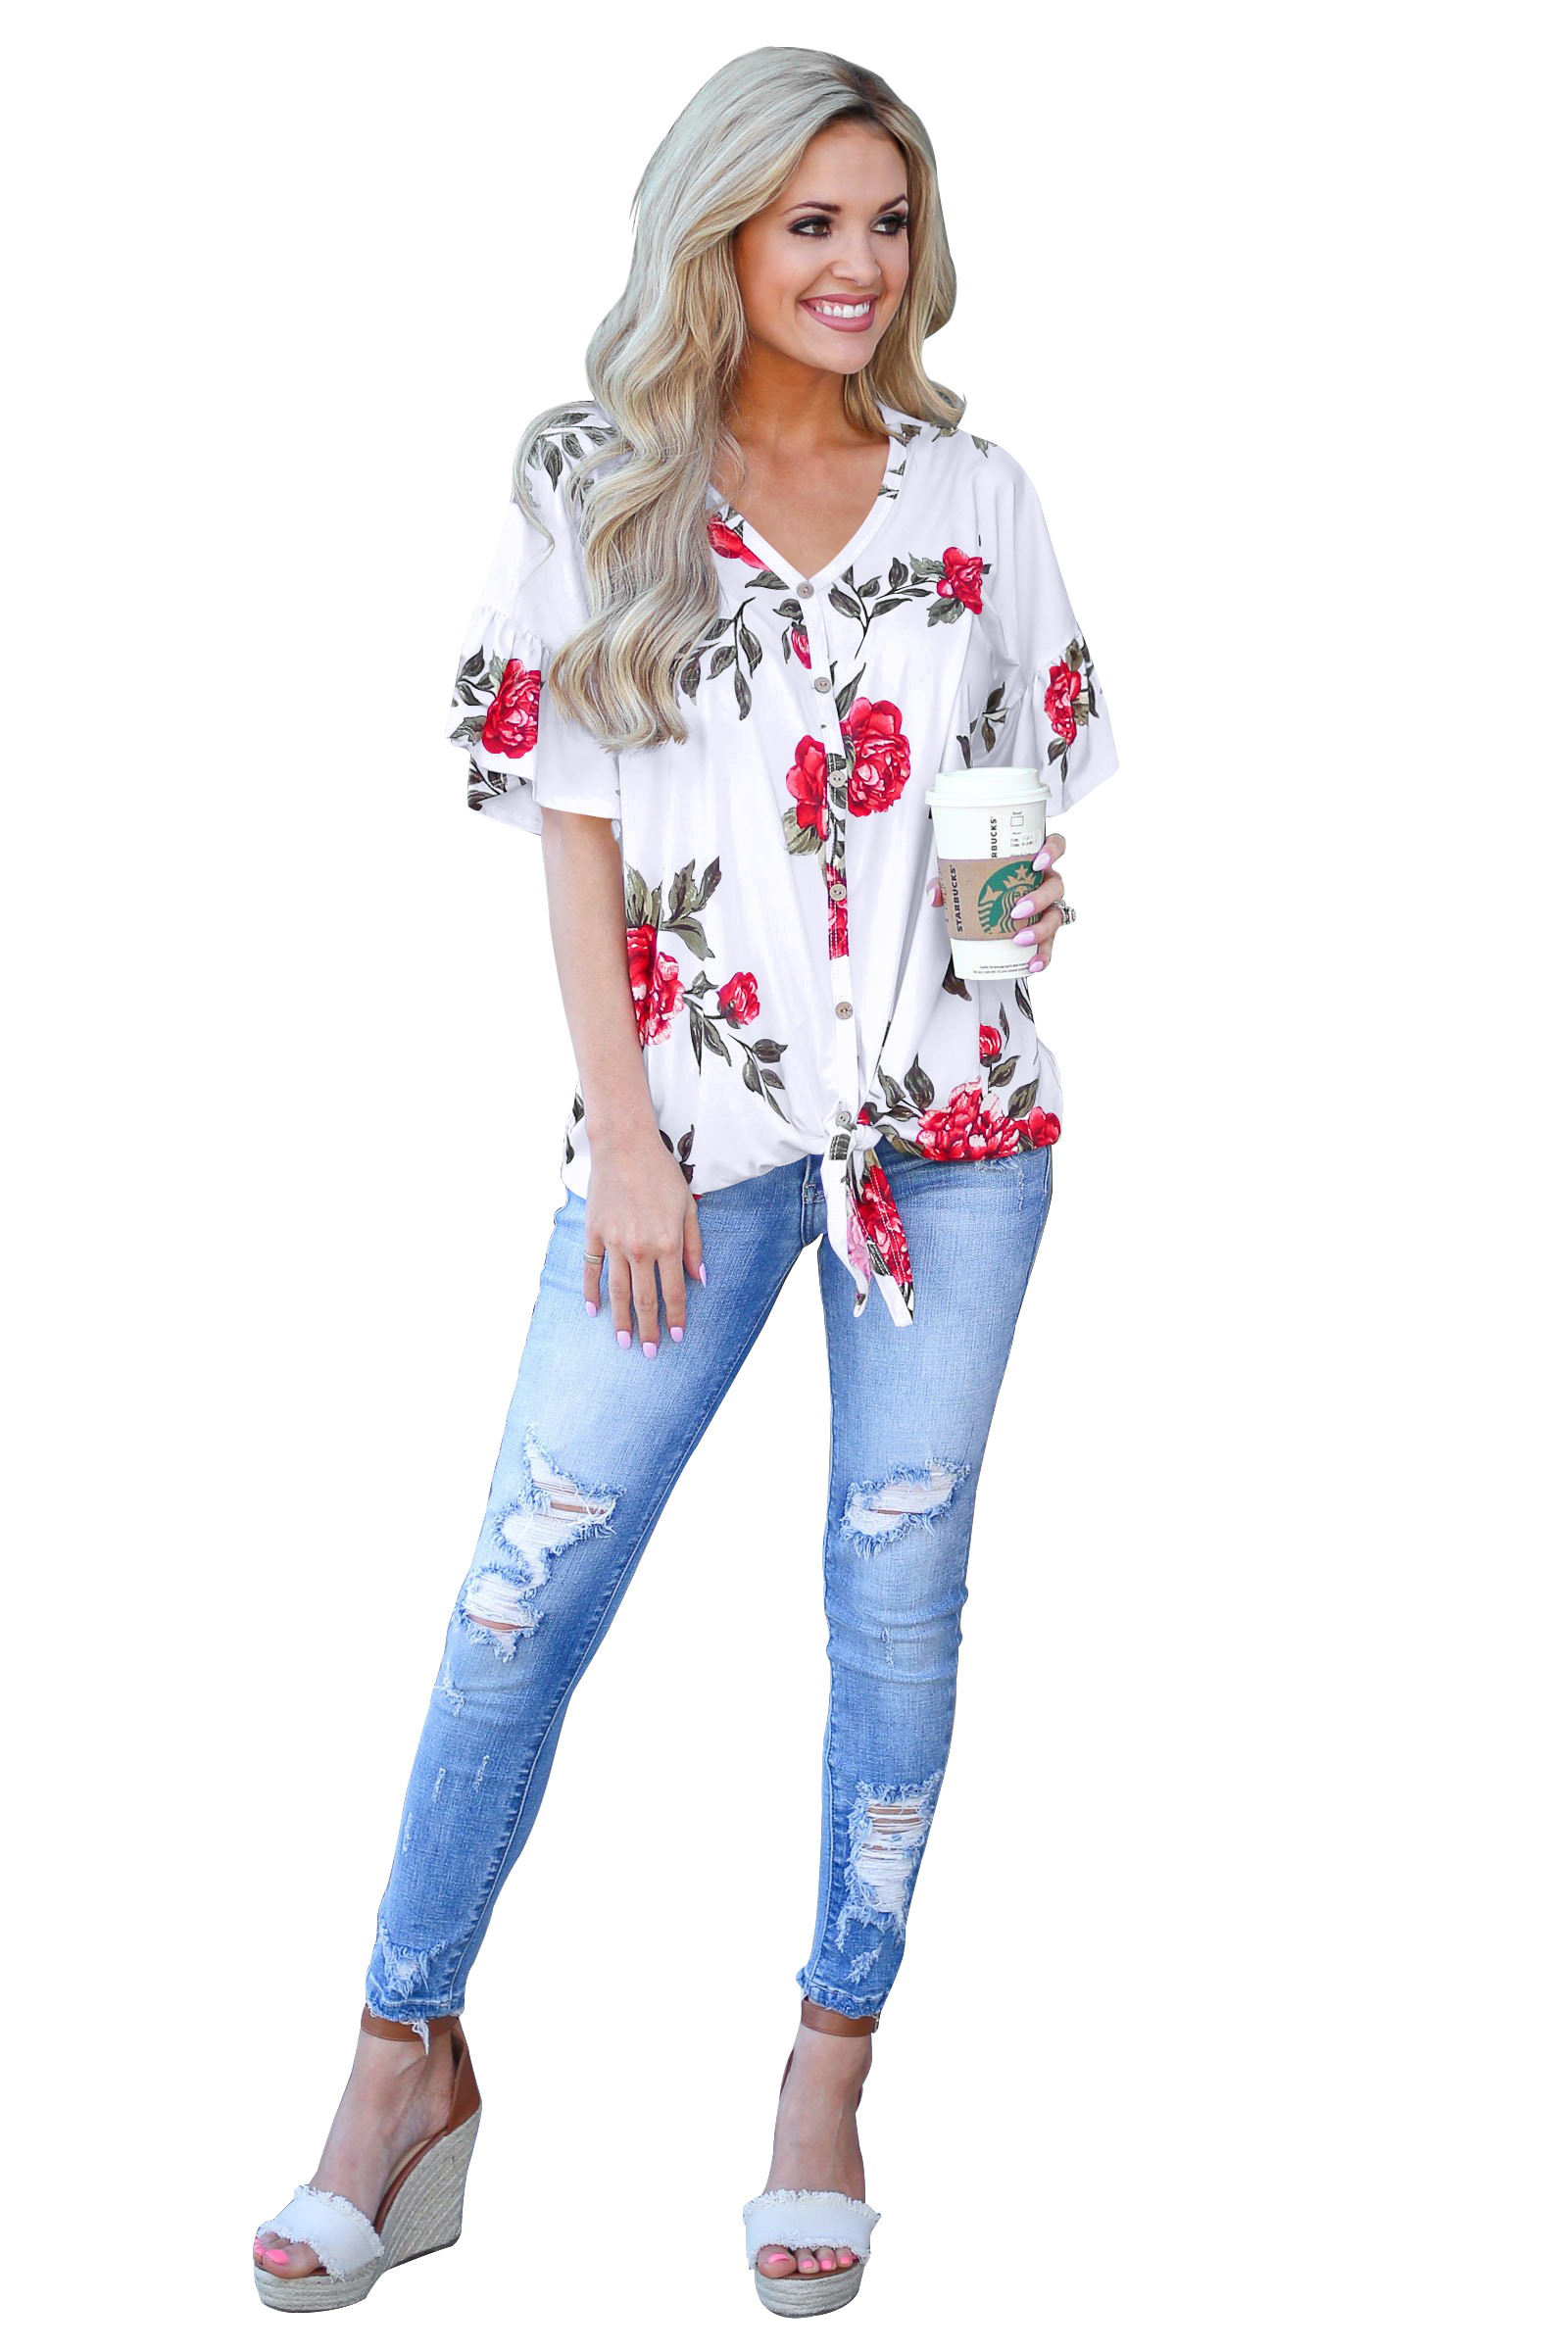 a498b84c861aff US$ 17.99 - Womens Short Sleeve V Neck Button Down Shirts Tie Front Knot  Henley Tops Loose Blouses - www.ladiesstar.com